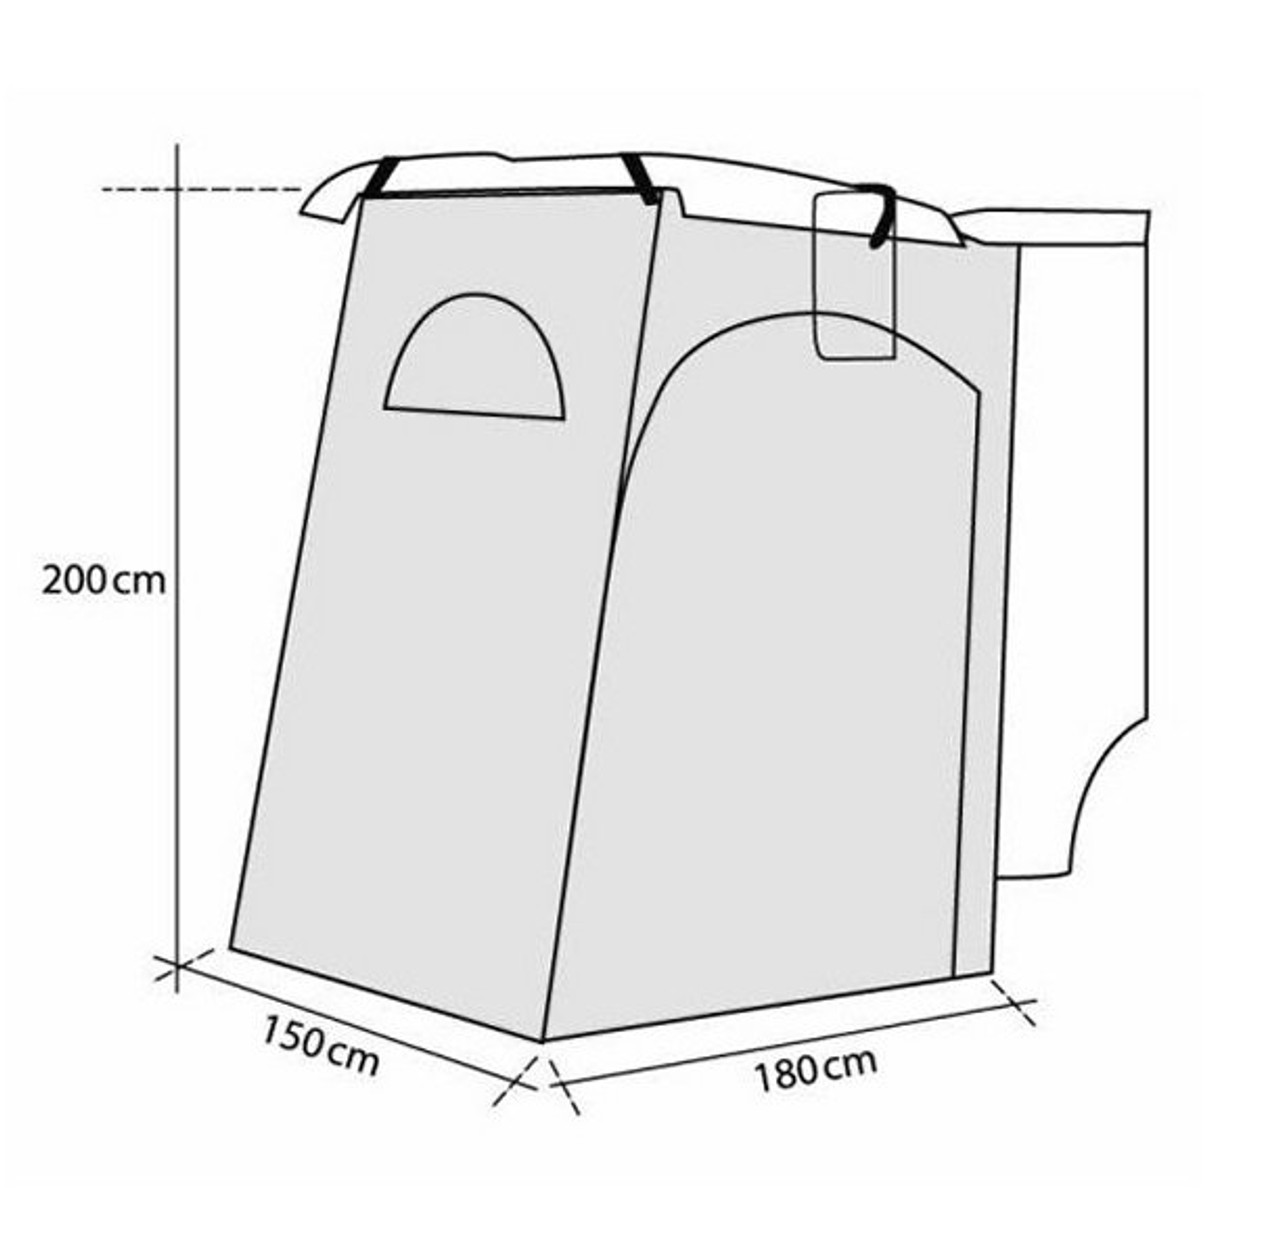 Reimo Fritz-Rear 2 Tailgate Tent for VW T5 T6 or similar ...